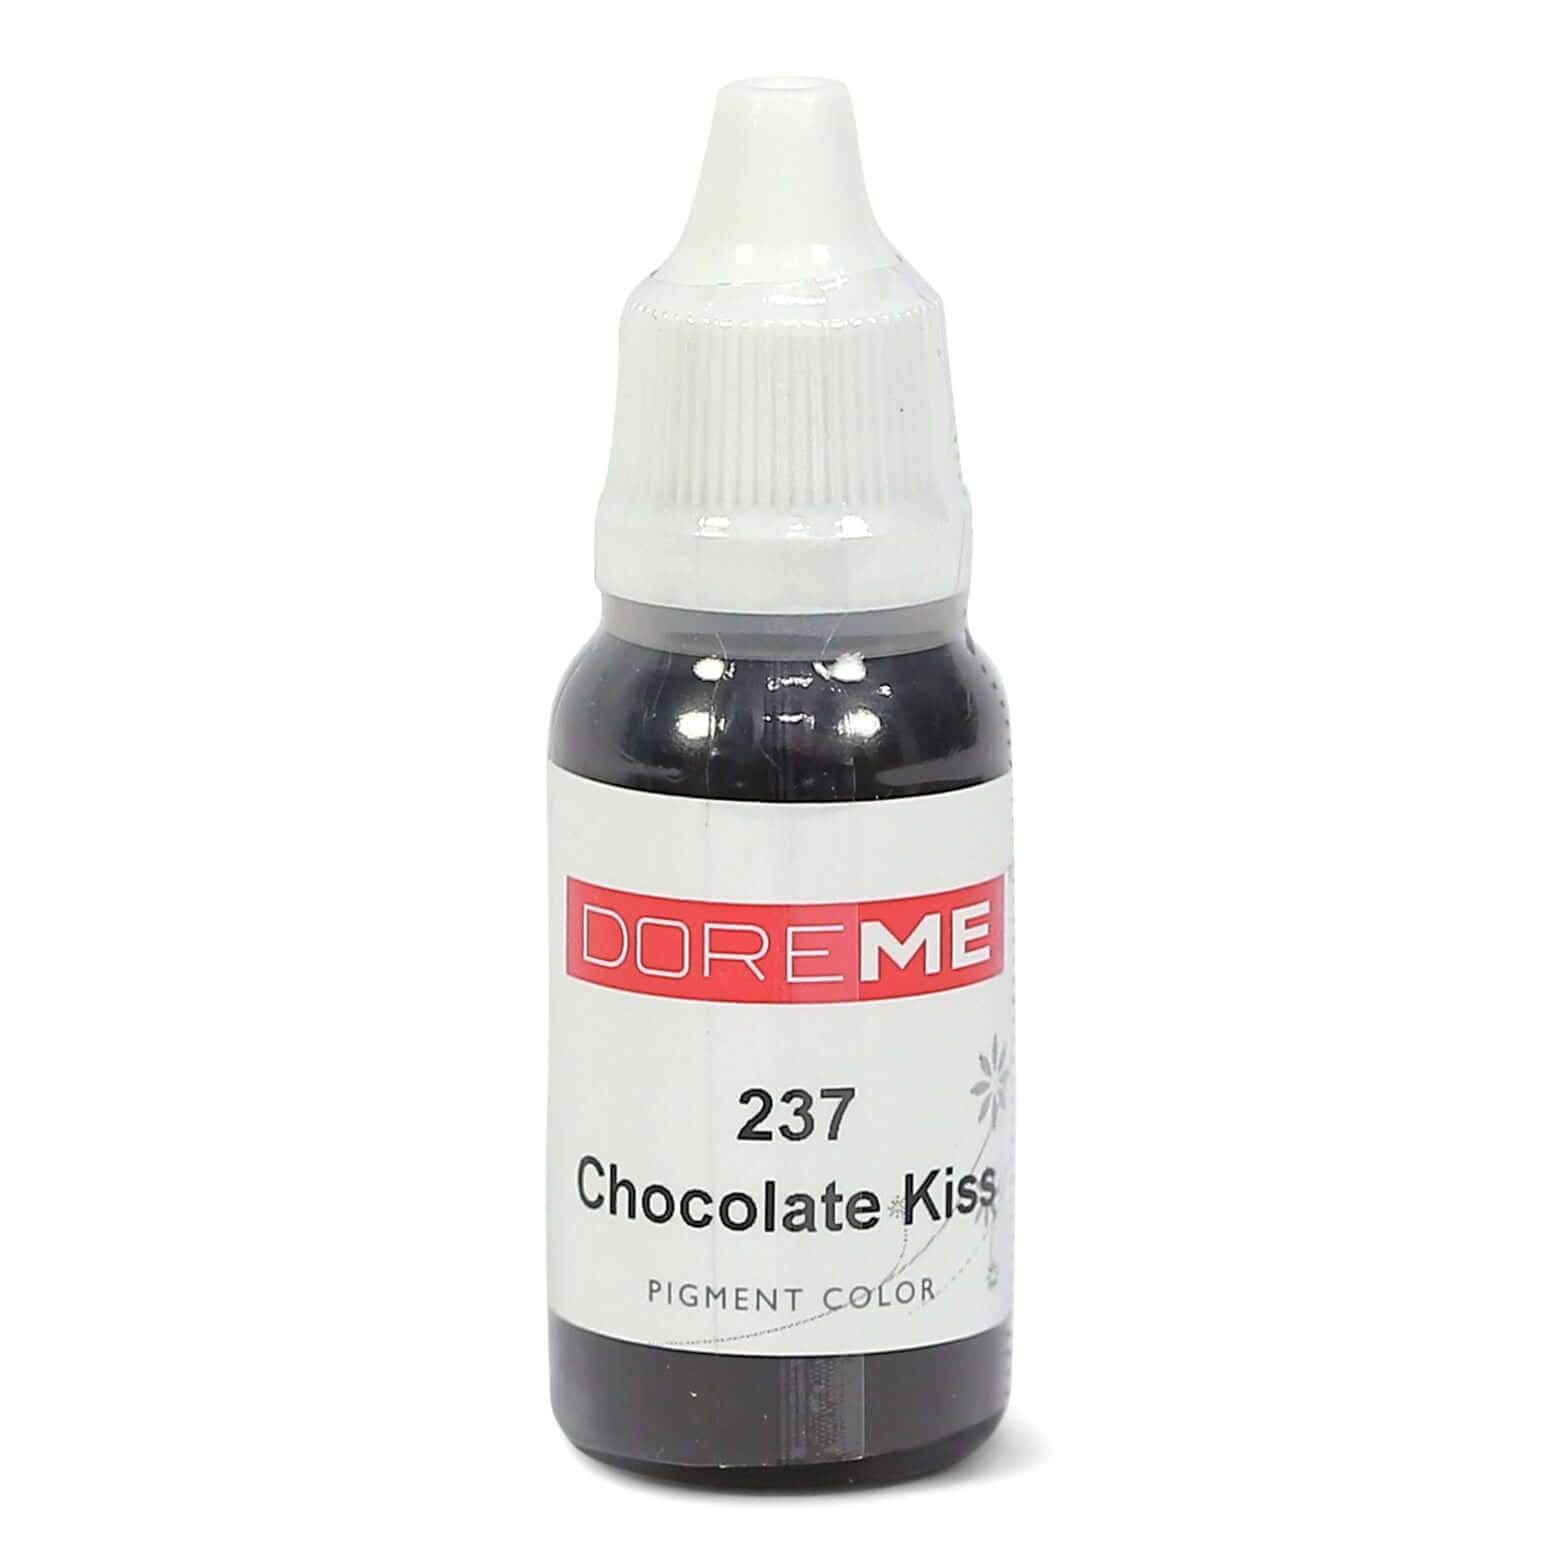 Permanent Makeup pigments Doreme Micropigmentation Eyebrow, Eyeliner, Lip Colours 237 Chocolate Kiss (c) - Beautiful Ink UK trade and wholesale supplier